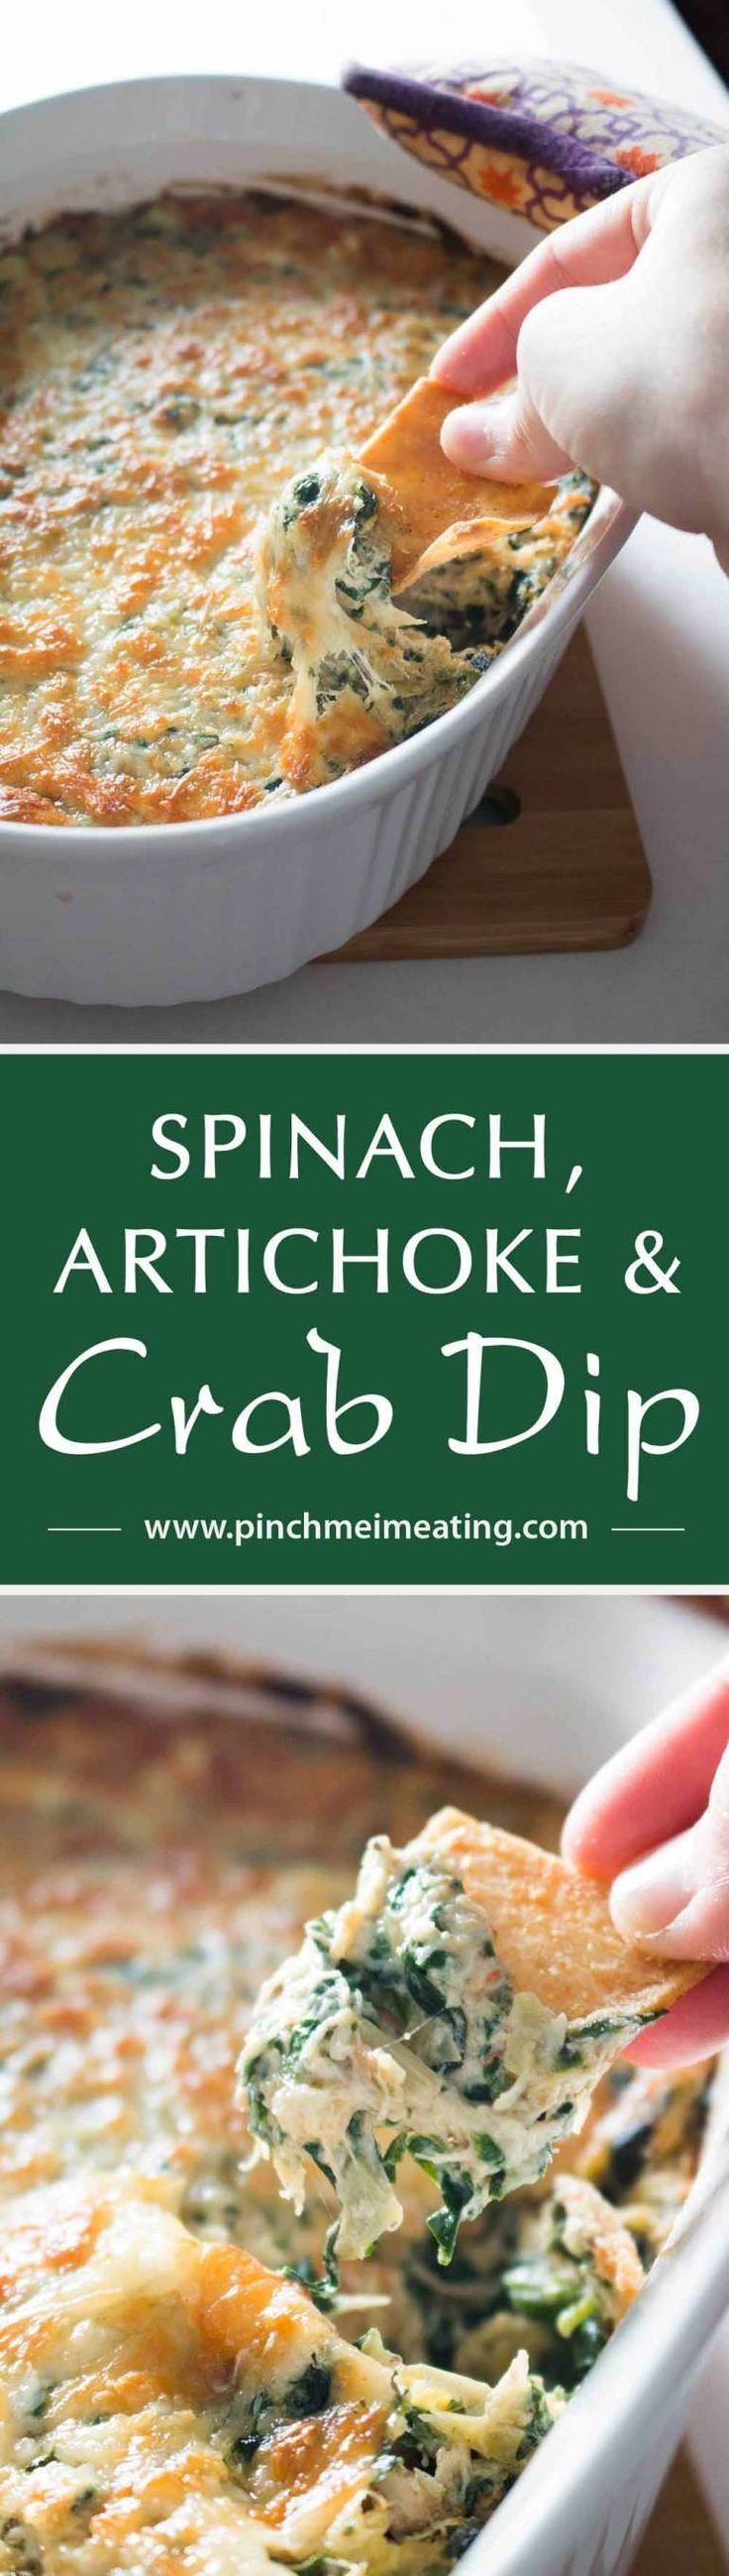 ... Crab Bake on Pinterest | Crab Boil Party, Seafood Appetizers and Crab